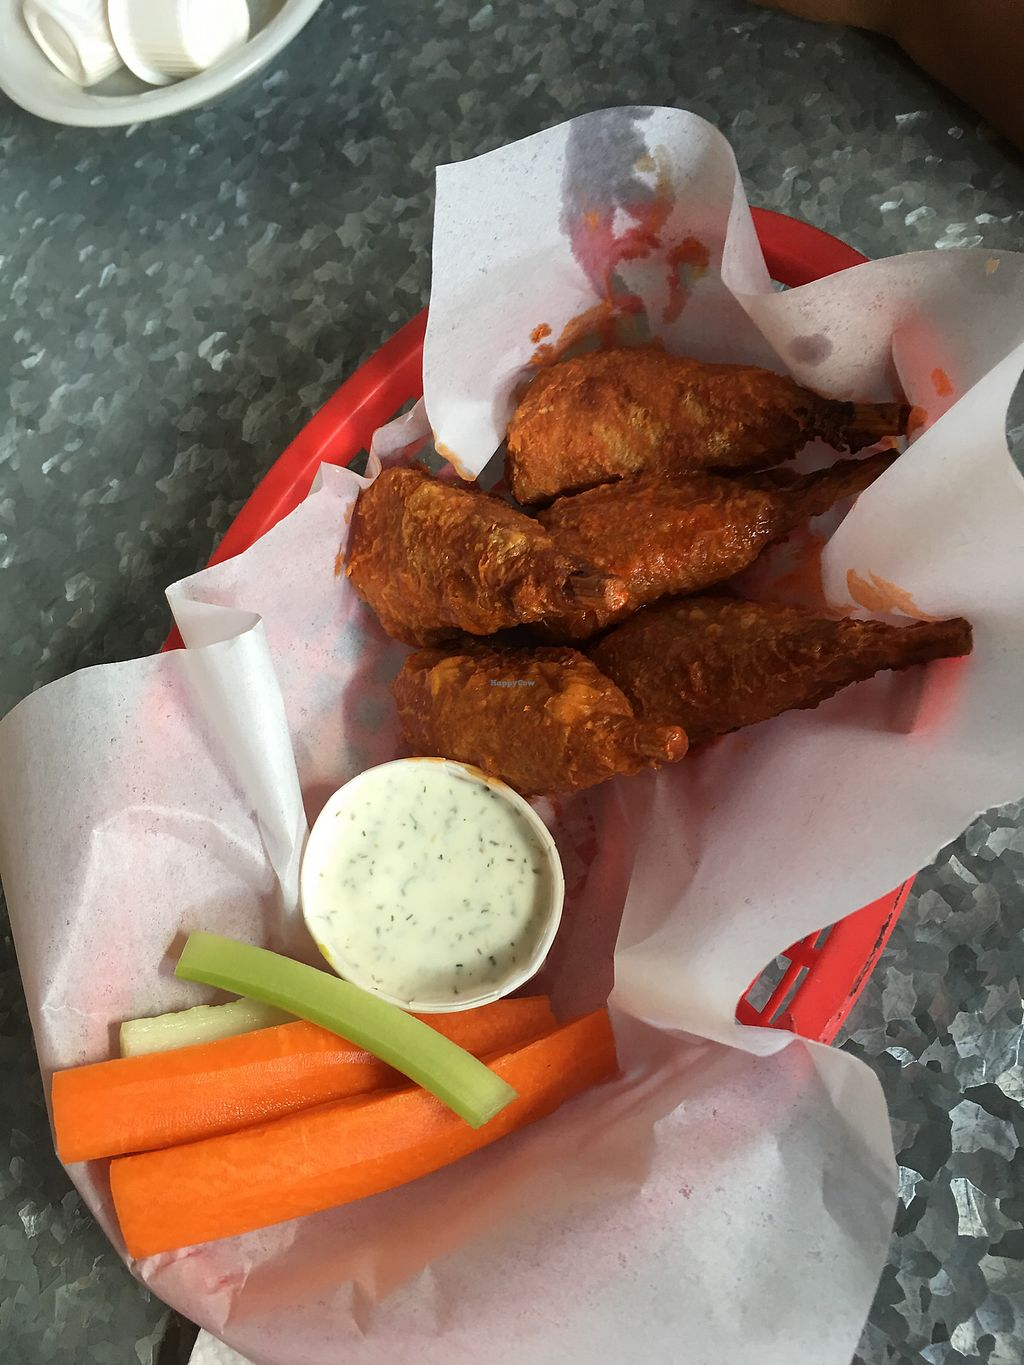 """Photo of Downbeat Diner and Lounge  by <a href=""""/members/profile/JessicaHolmes"""">JessicaHolmes</a> <br/>Hot wings & ranch dip <br/> September 11, 2017  - <a href='/contact/abuse/image/25374/303462'>Report</a>"""